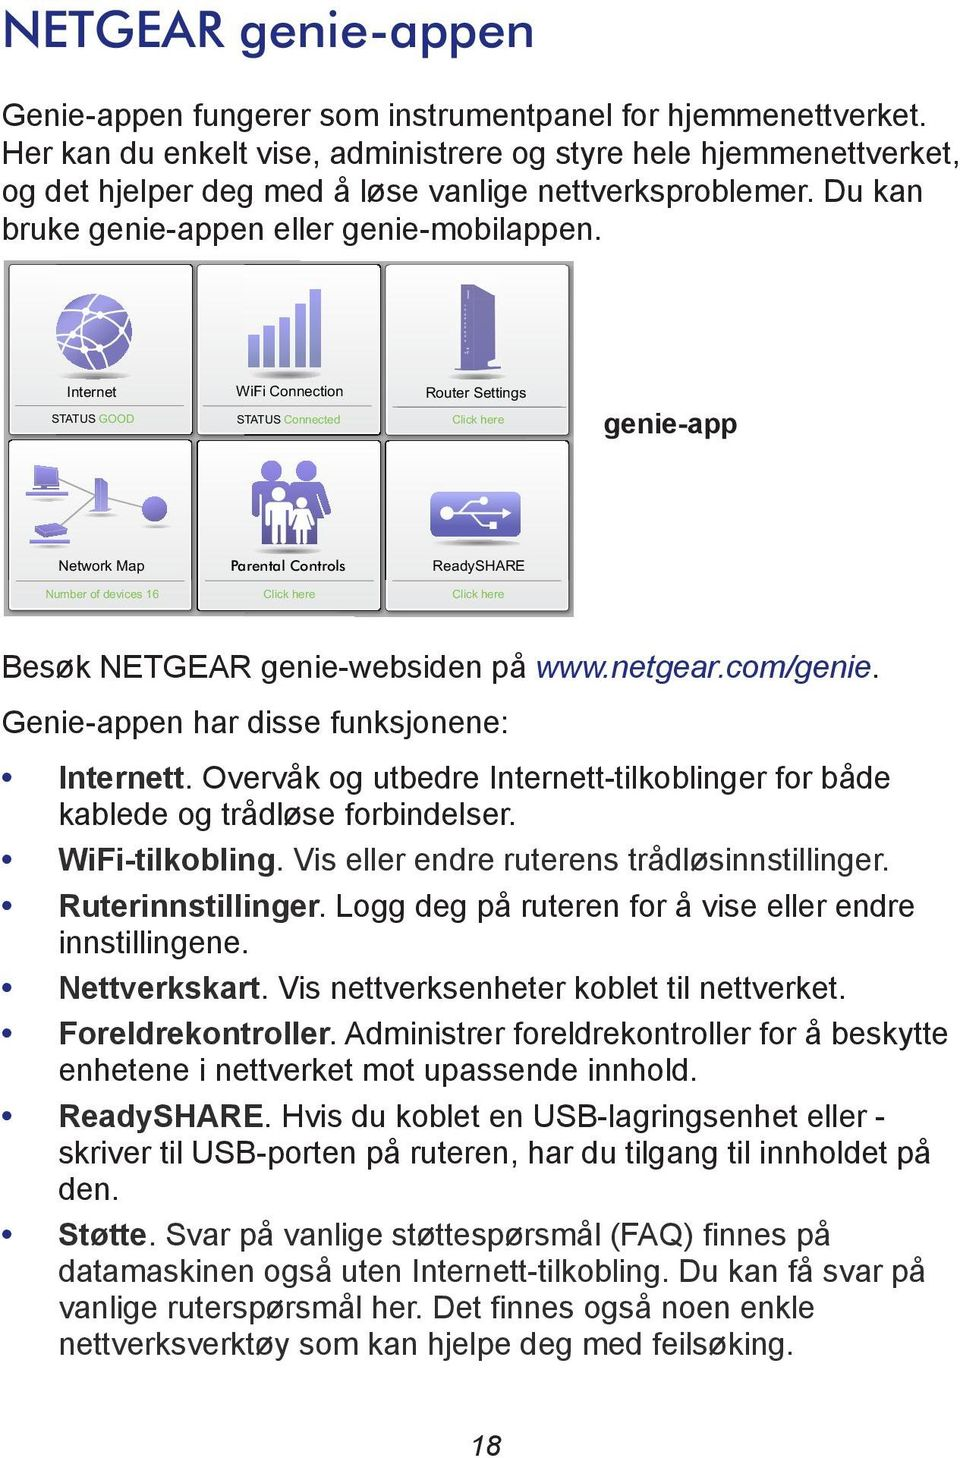 Internet STATUS GOOD WiFi Connection STATUS Connected Router Settings Click here genie-app Network Map Parental Controls ReadySHARE Number of devices 16 Click here Click here Besøk NETGEAR